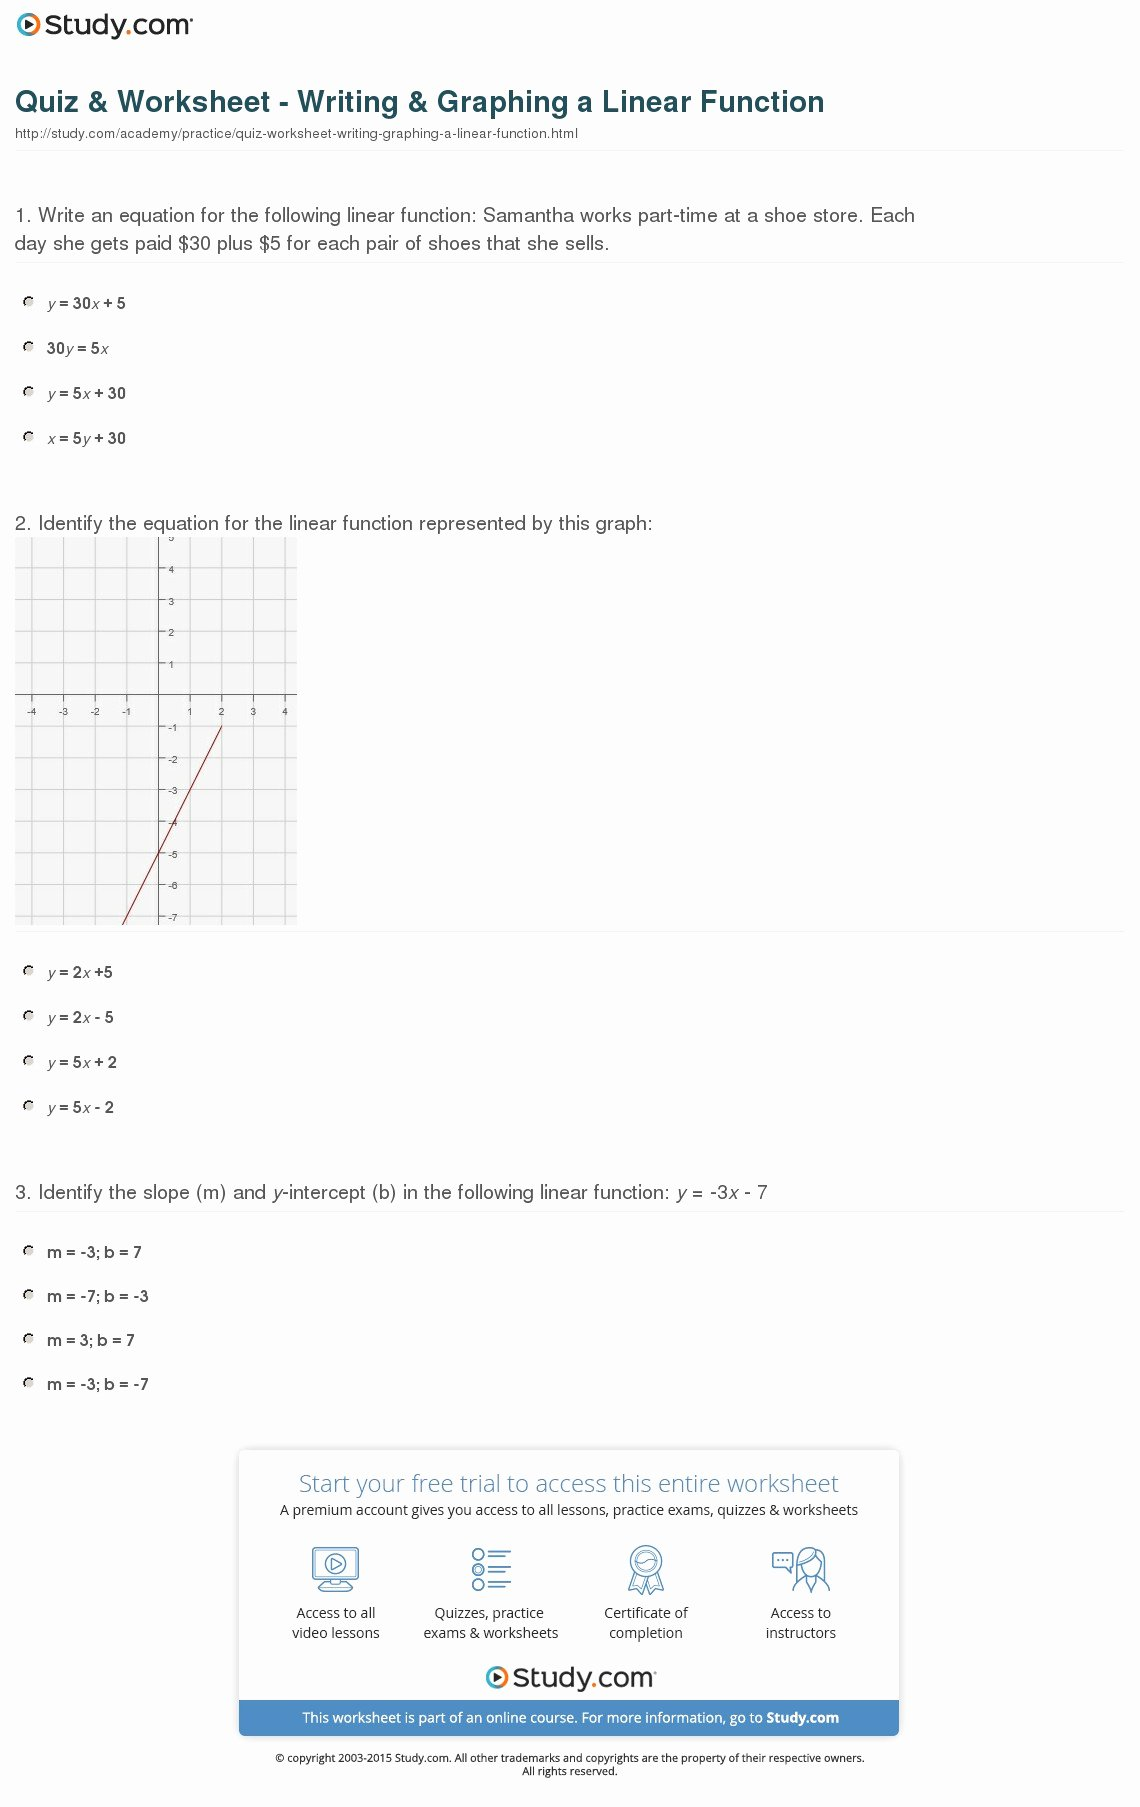 Writing Linear Equations Worksheet Luxury Quiz & Worksheet Writing & Graphing A Linear Function